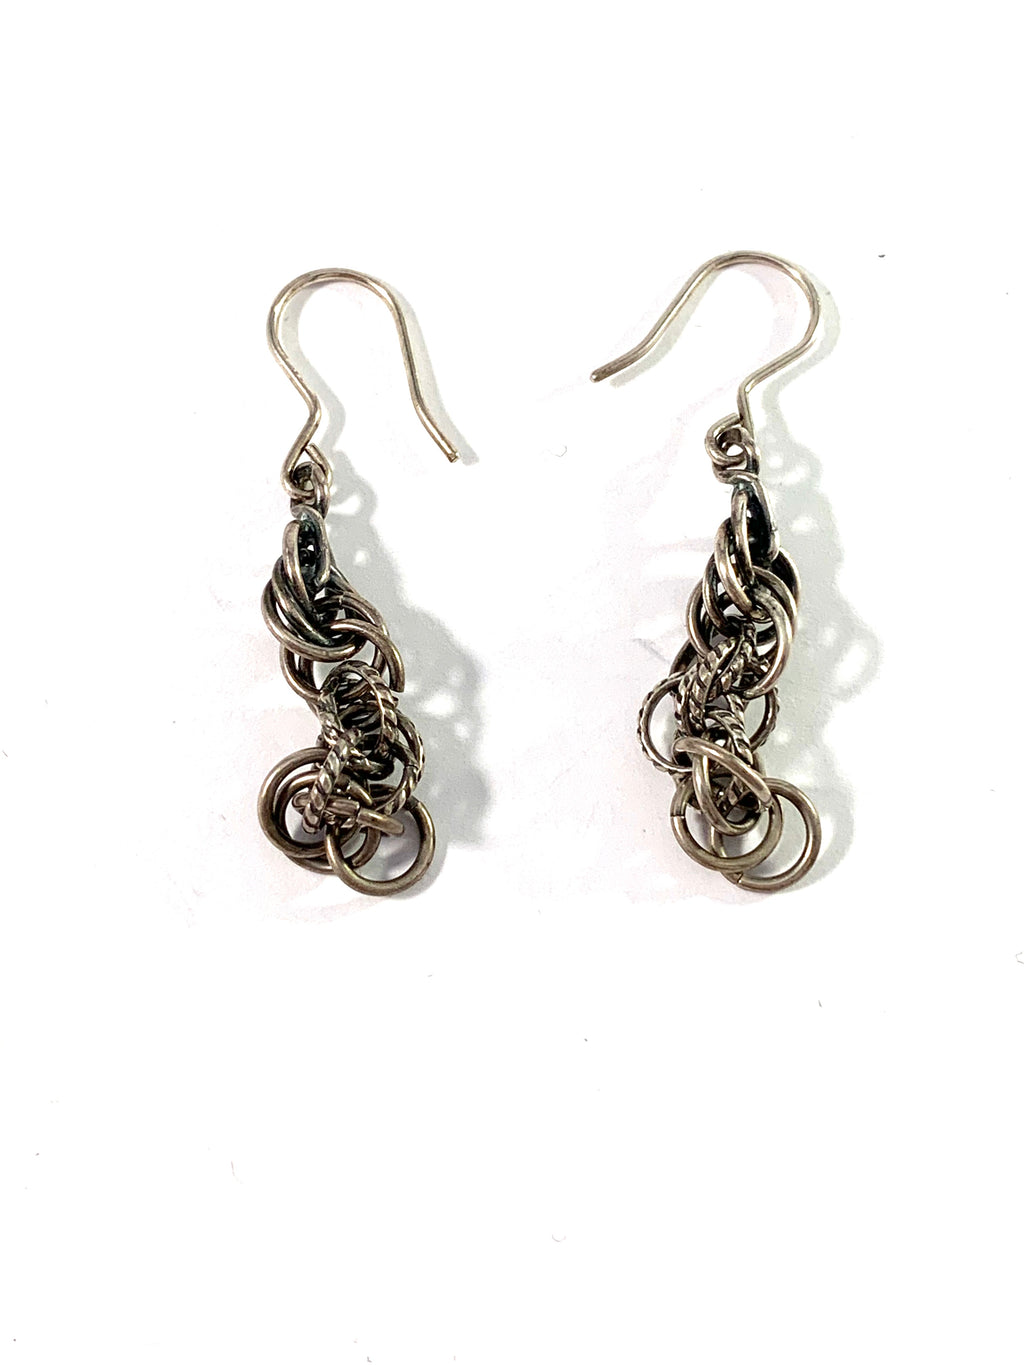 Kalevala Koru, Finland Vintage Sterling Silver Dangle Earrings.